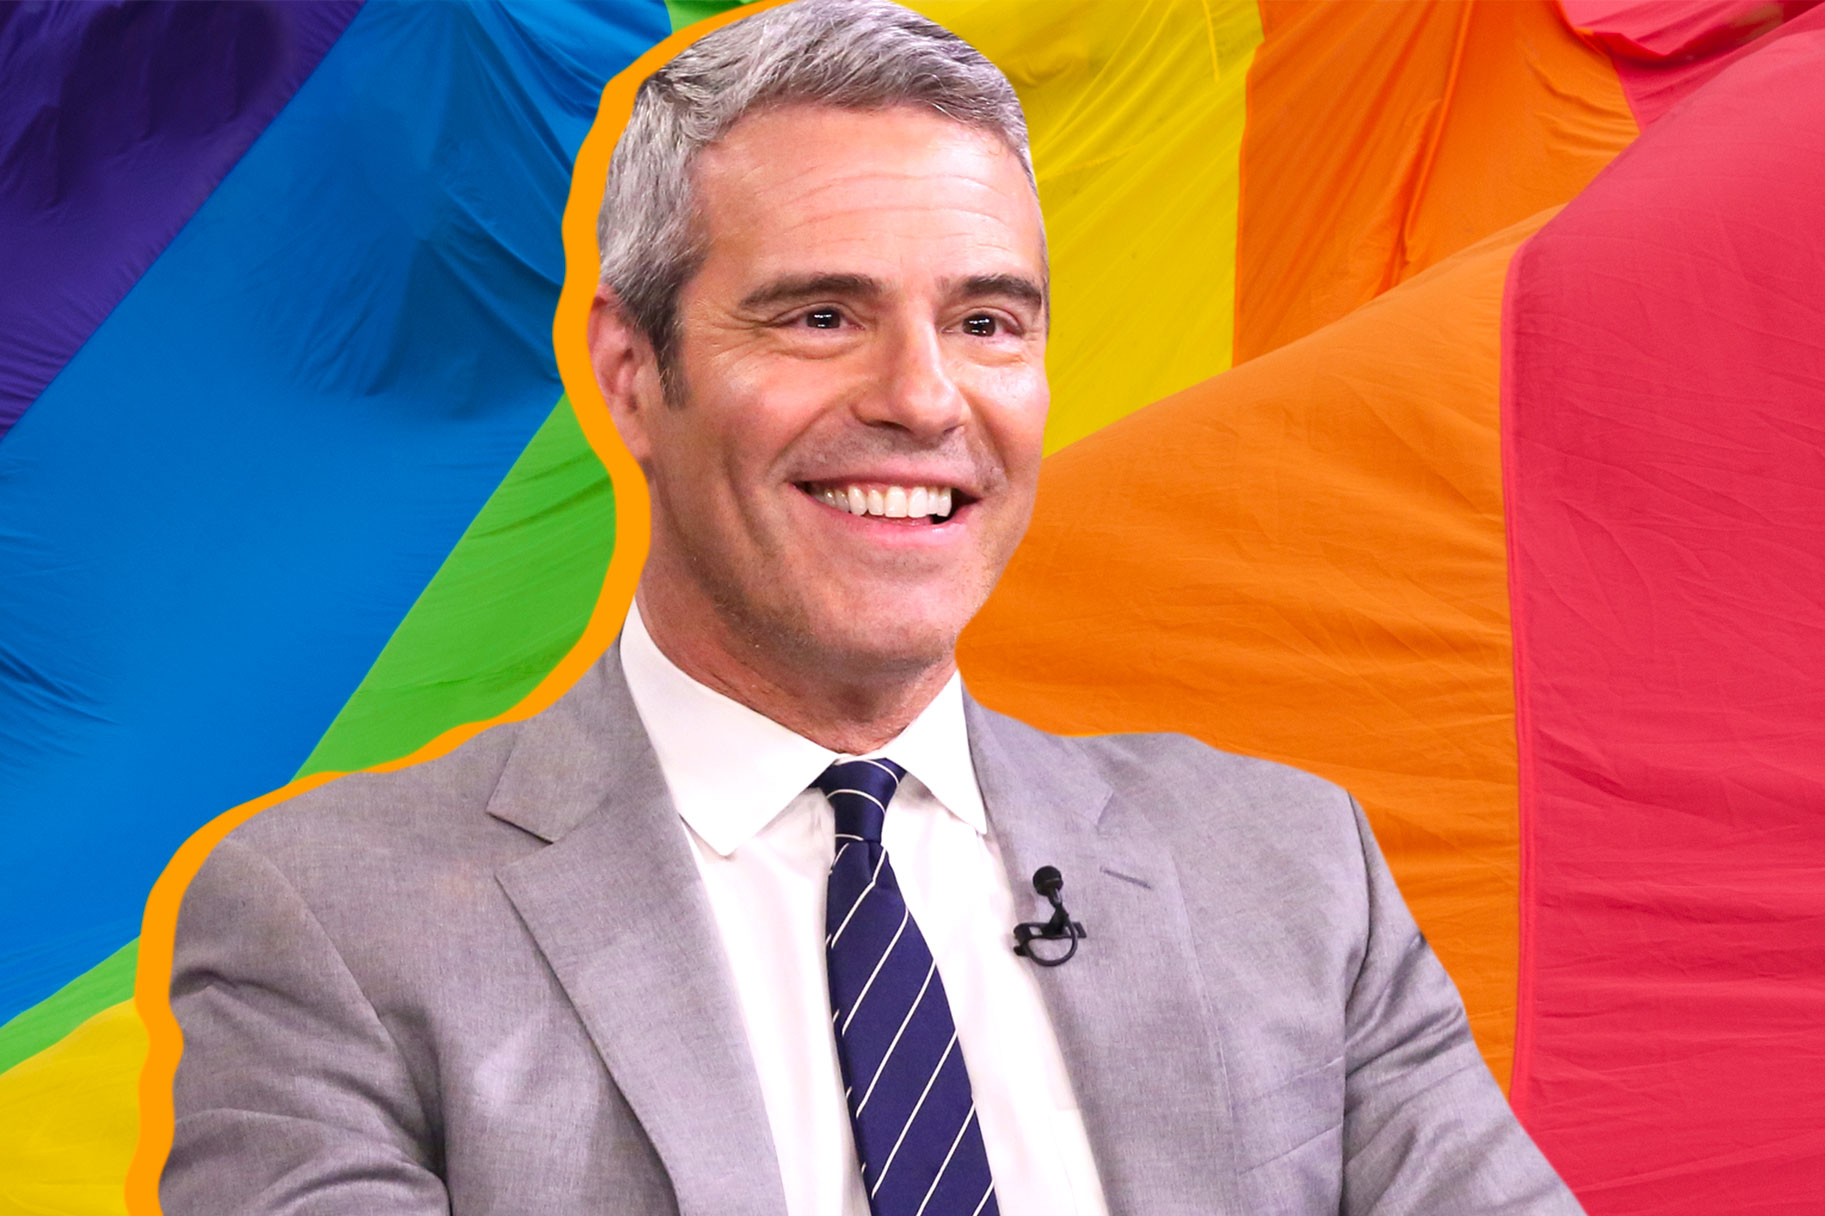 Andy Cohen and Other Bravo Stars Celebrate NYC Pride